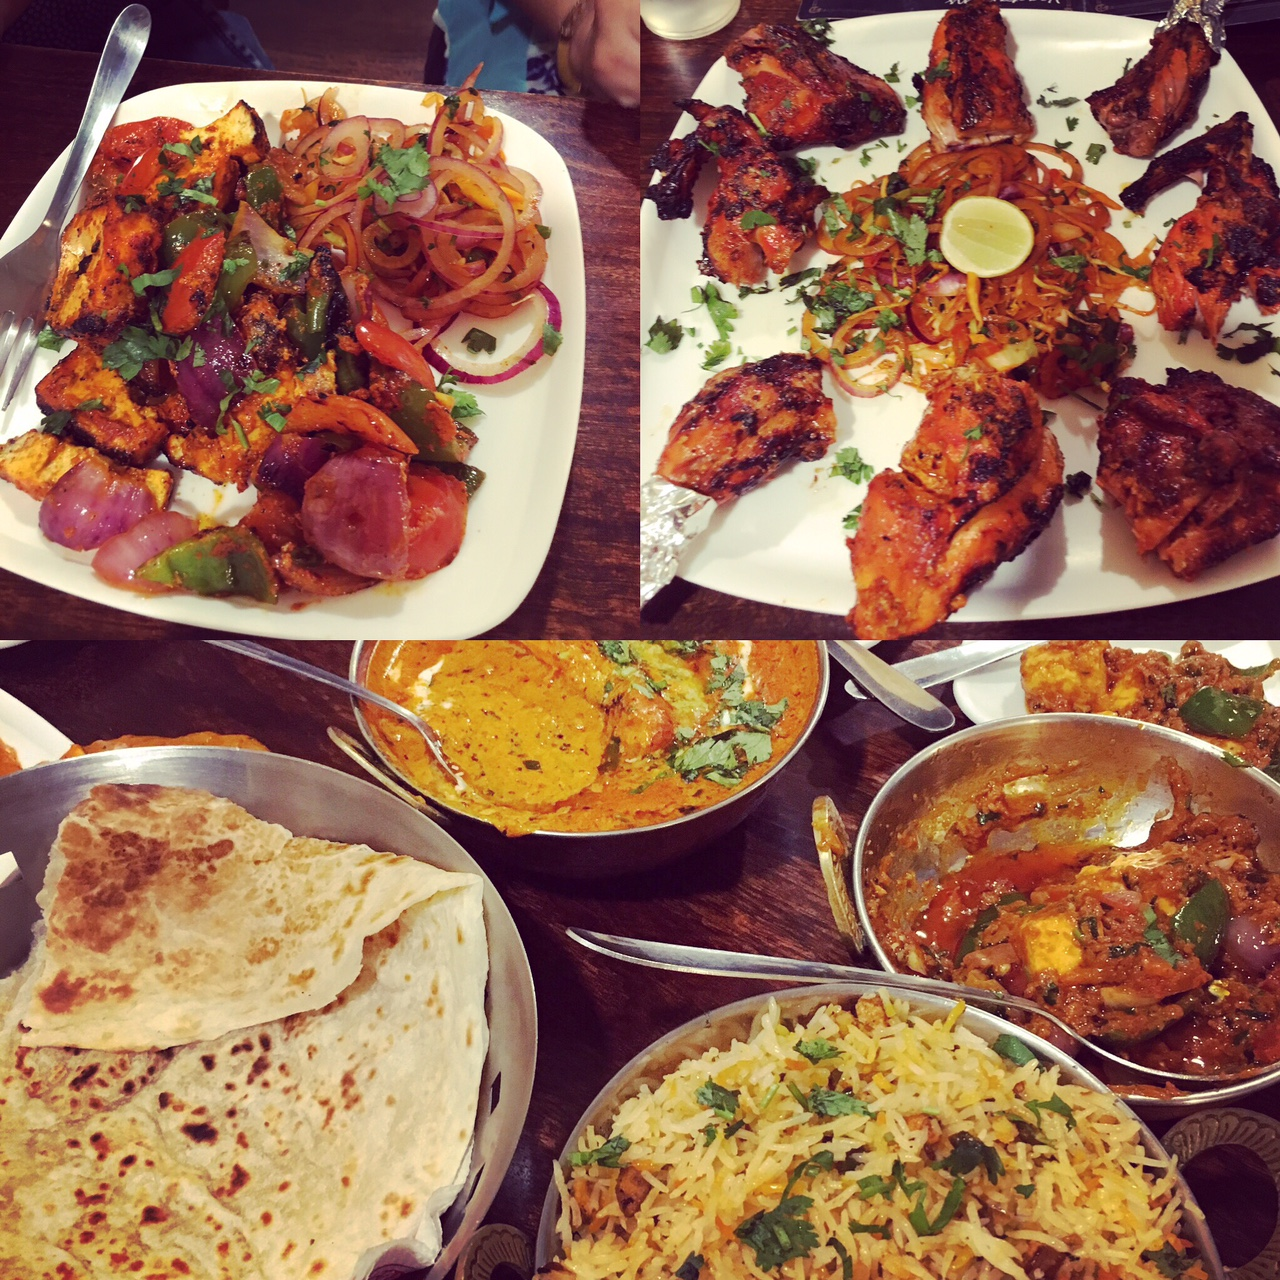 Jaipur Food Tour - Indian Main Course